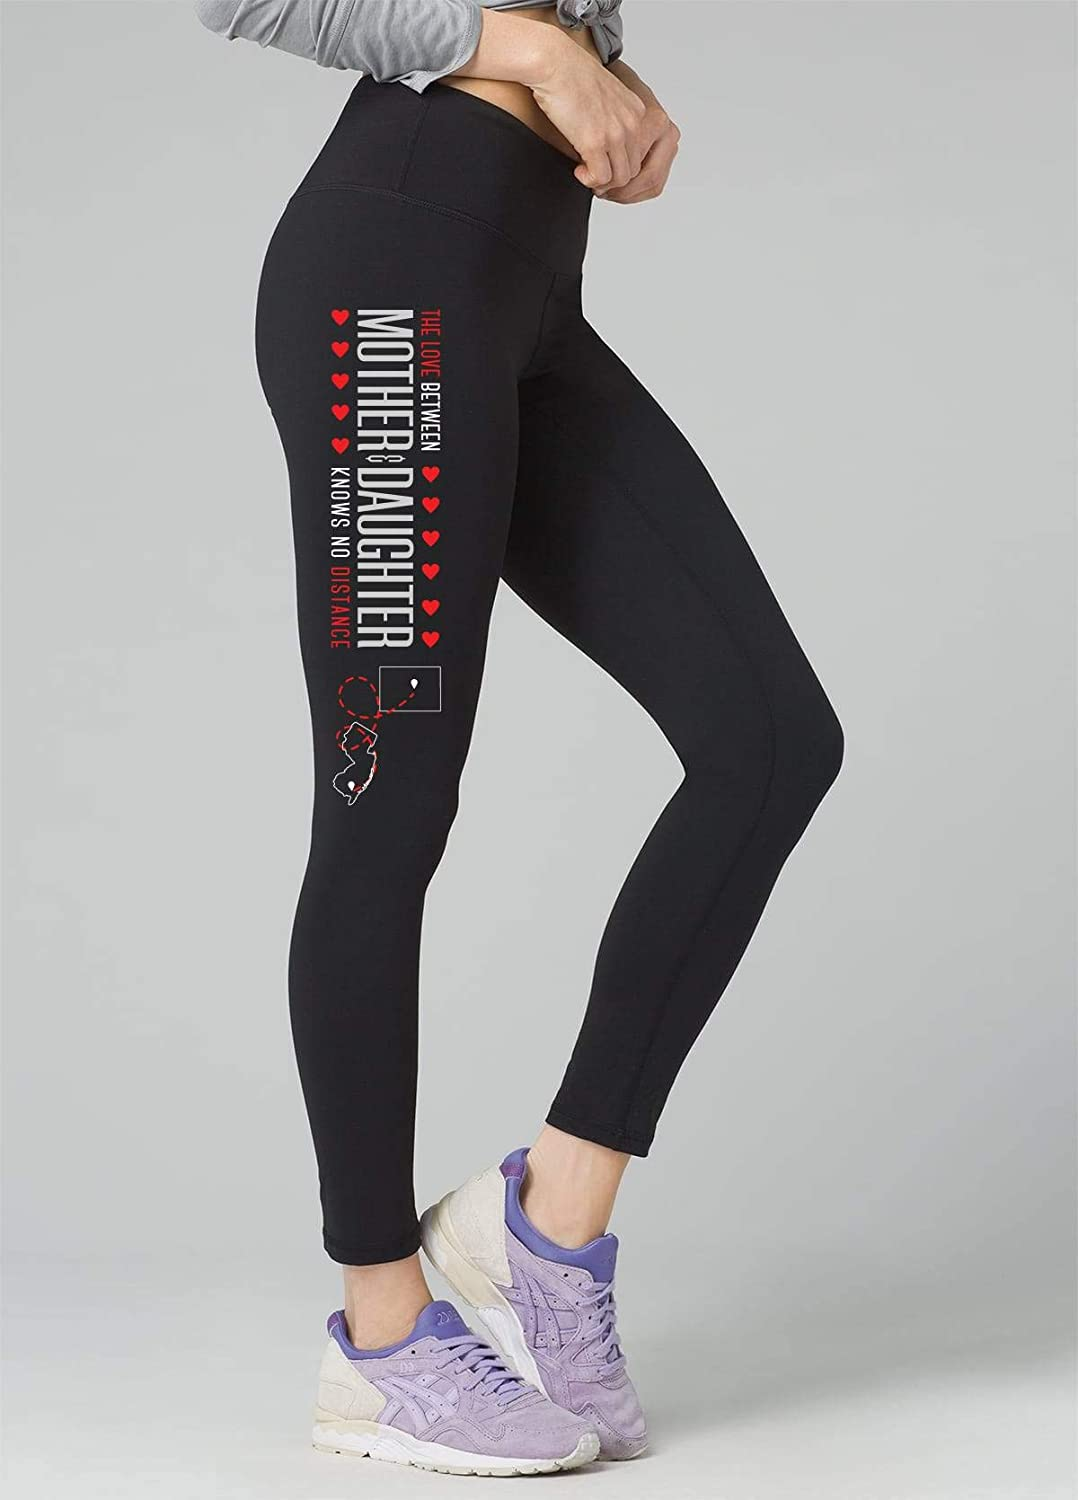 Leggings Colorado CO New Jersey NJ The Love Between Mother /& Daughter Knows no Distance